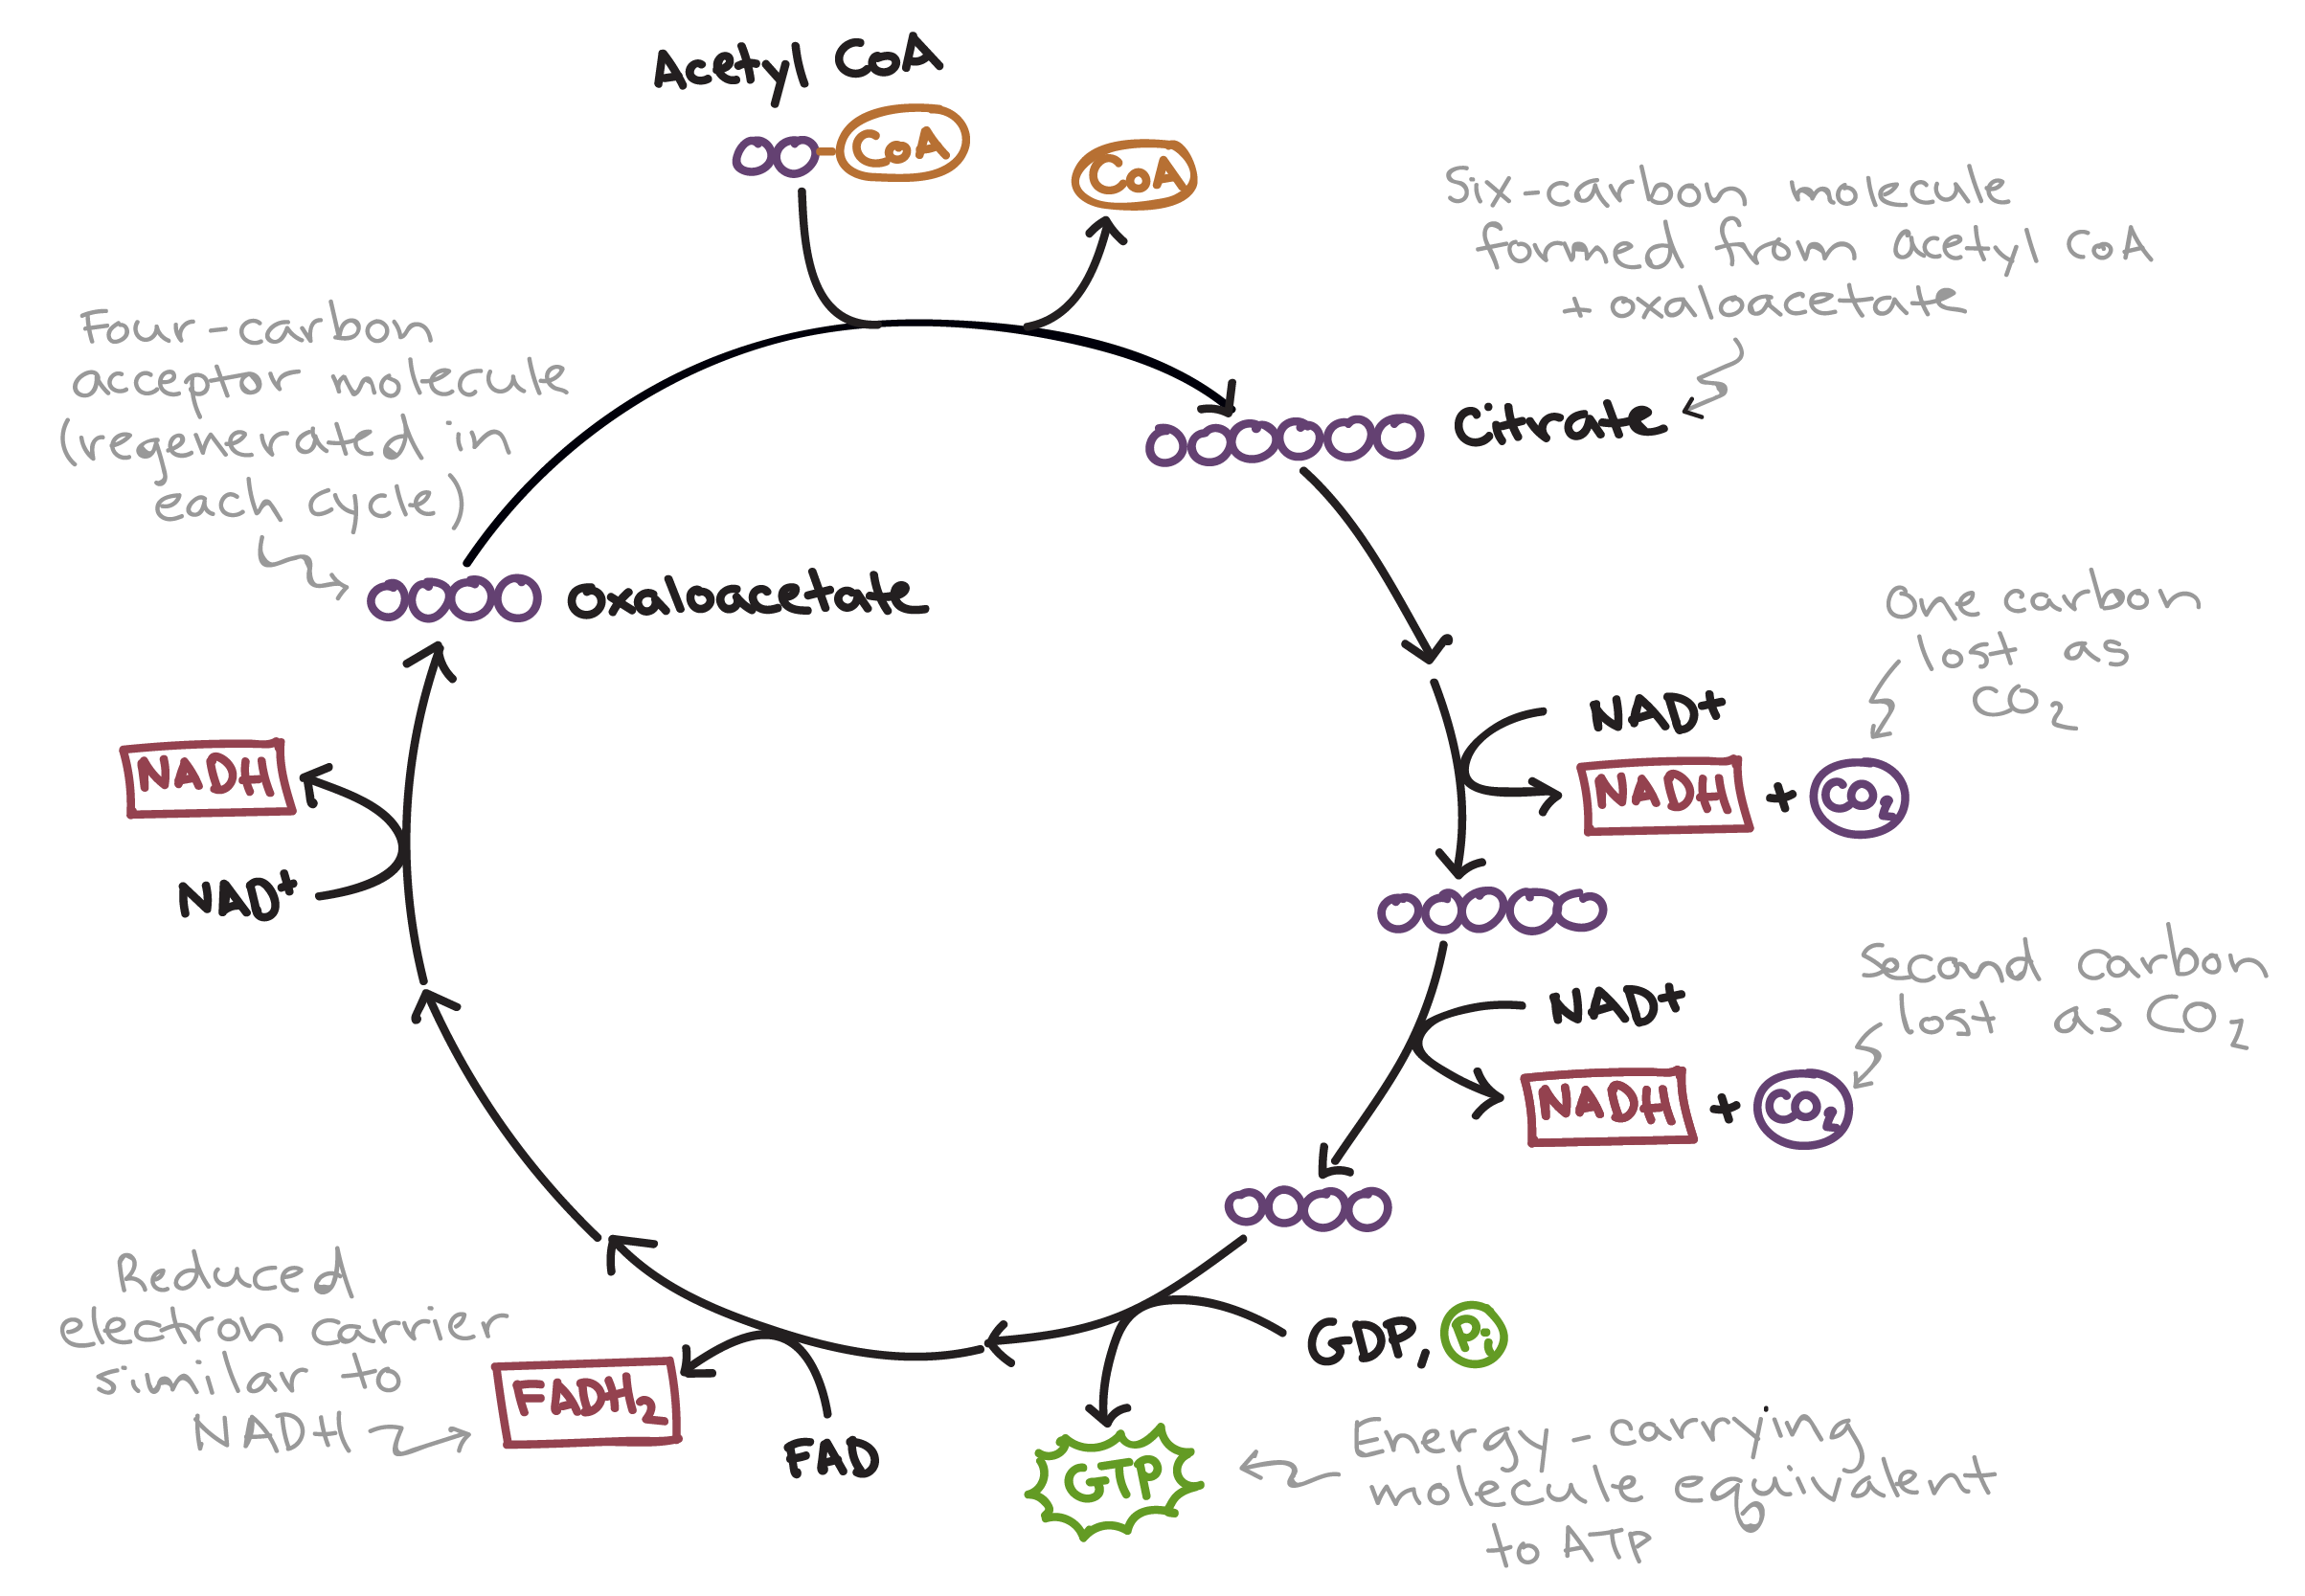 ... Acid Cycle Krebs | Free Collection Of Pictures Of The Water Cycle